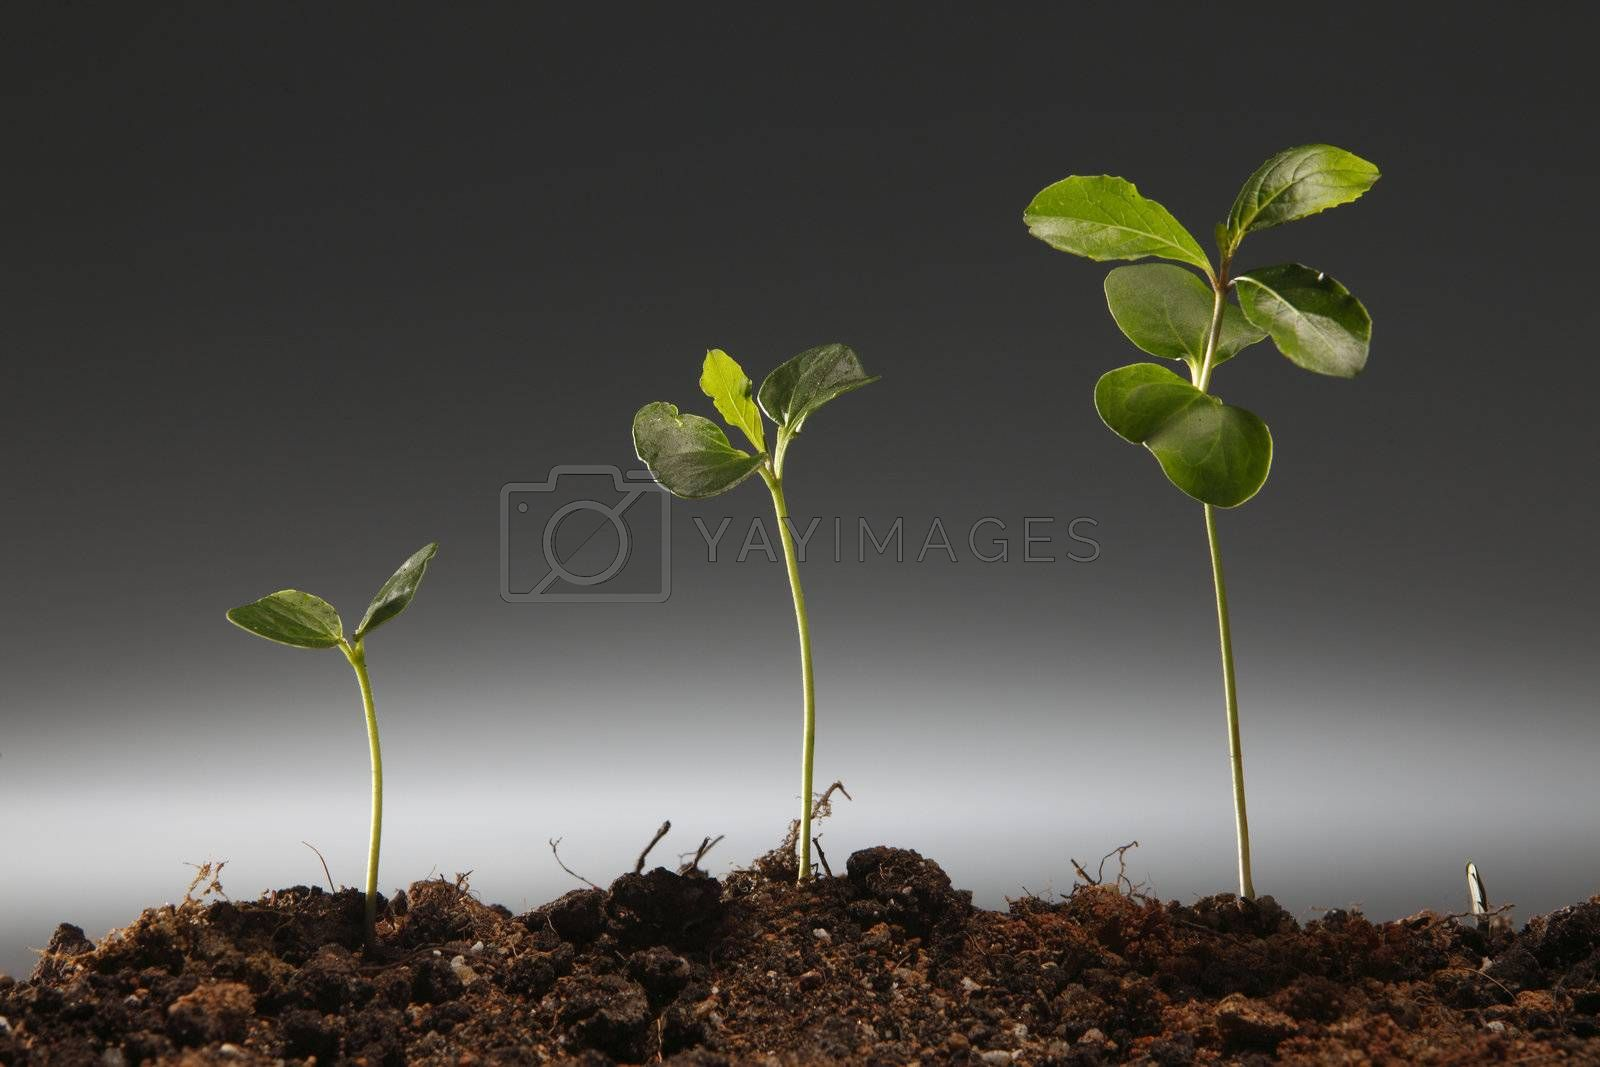 plant is growing in different stage